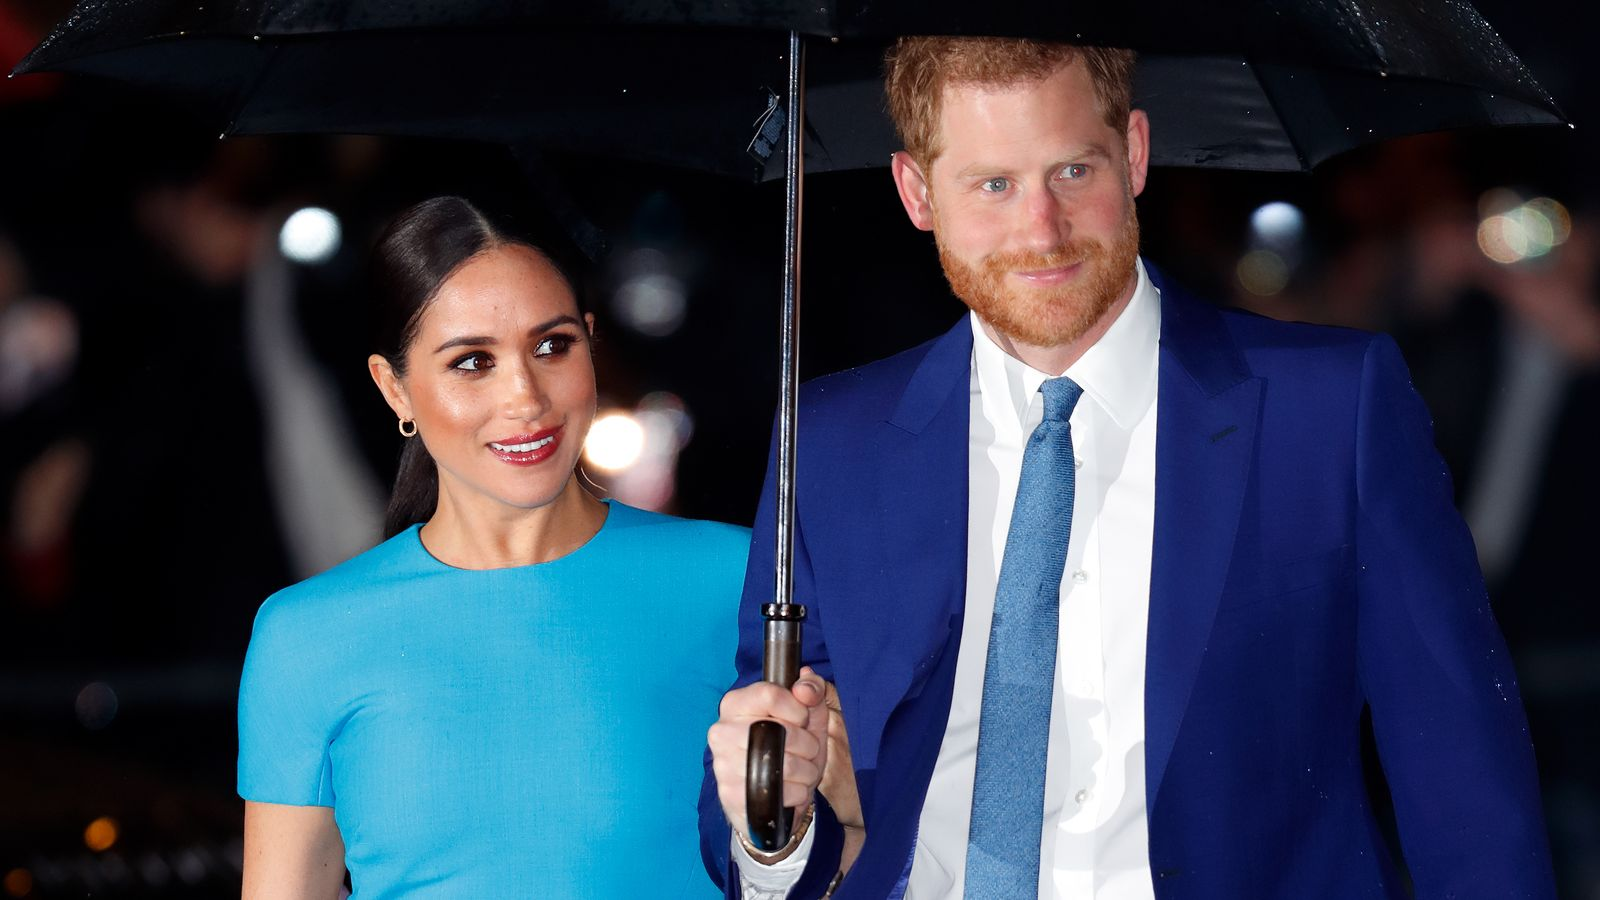 Harry and Meghan reveal the name of their new charitable organisation - Sky News